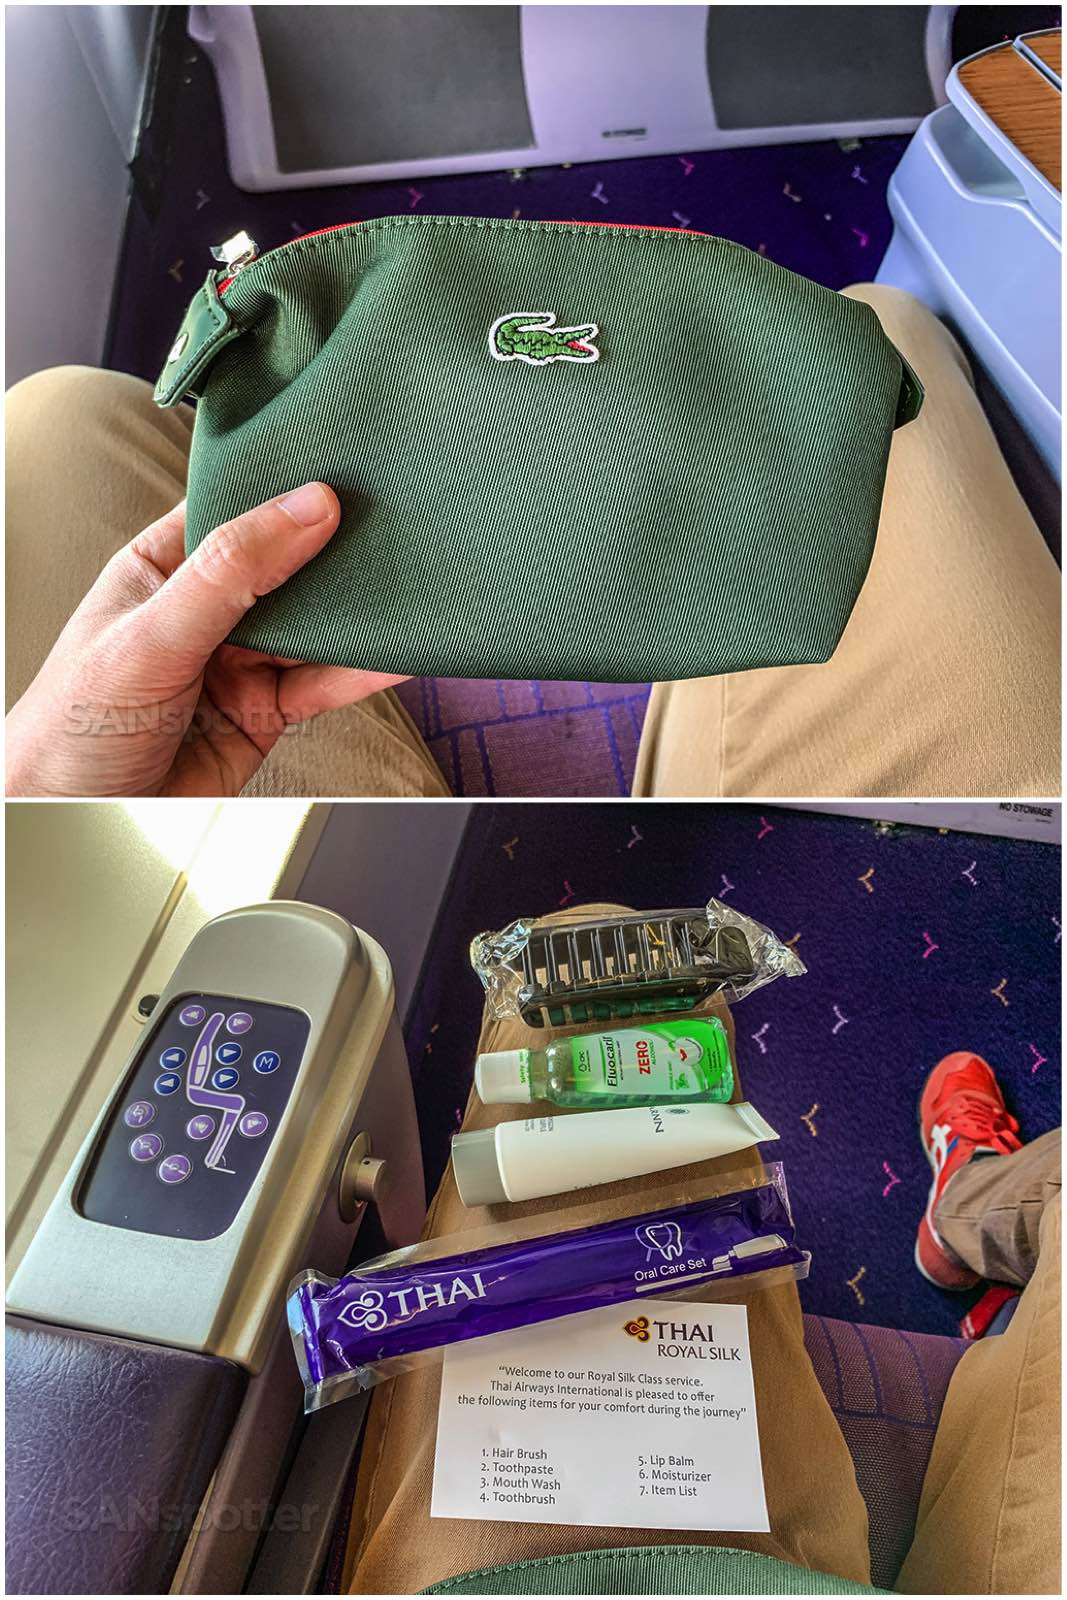 Thai Airways business class amenity kit